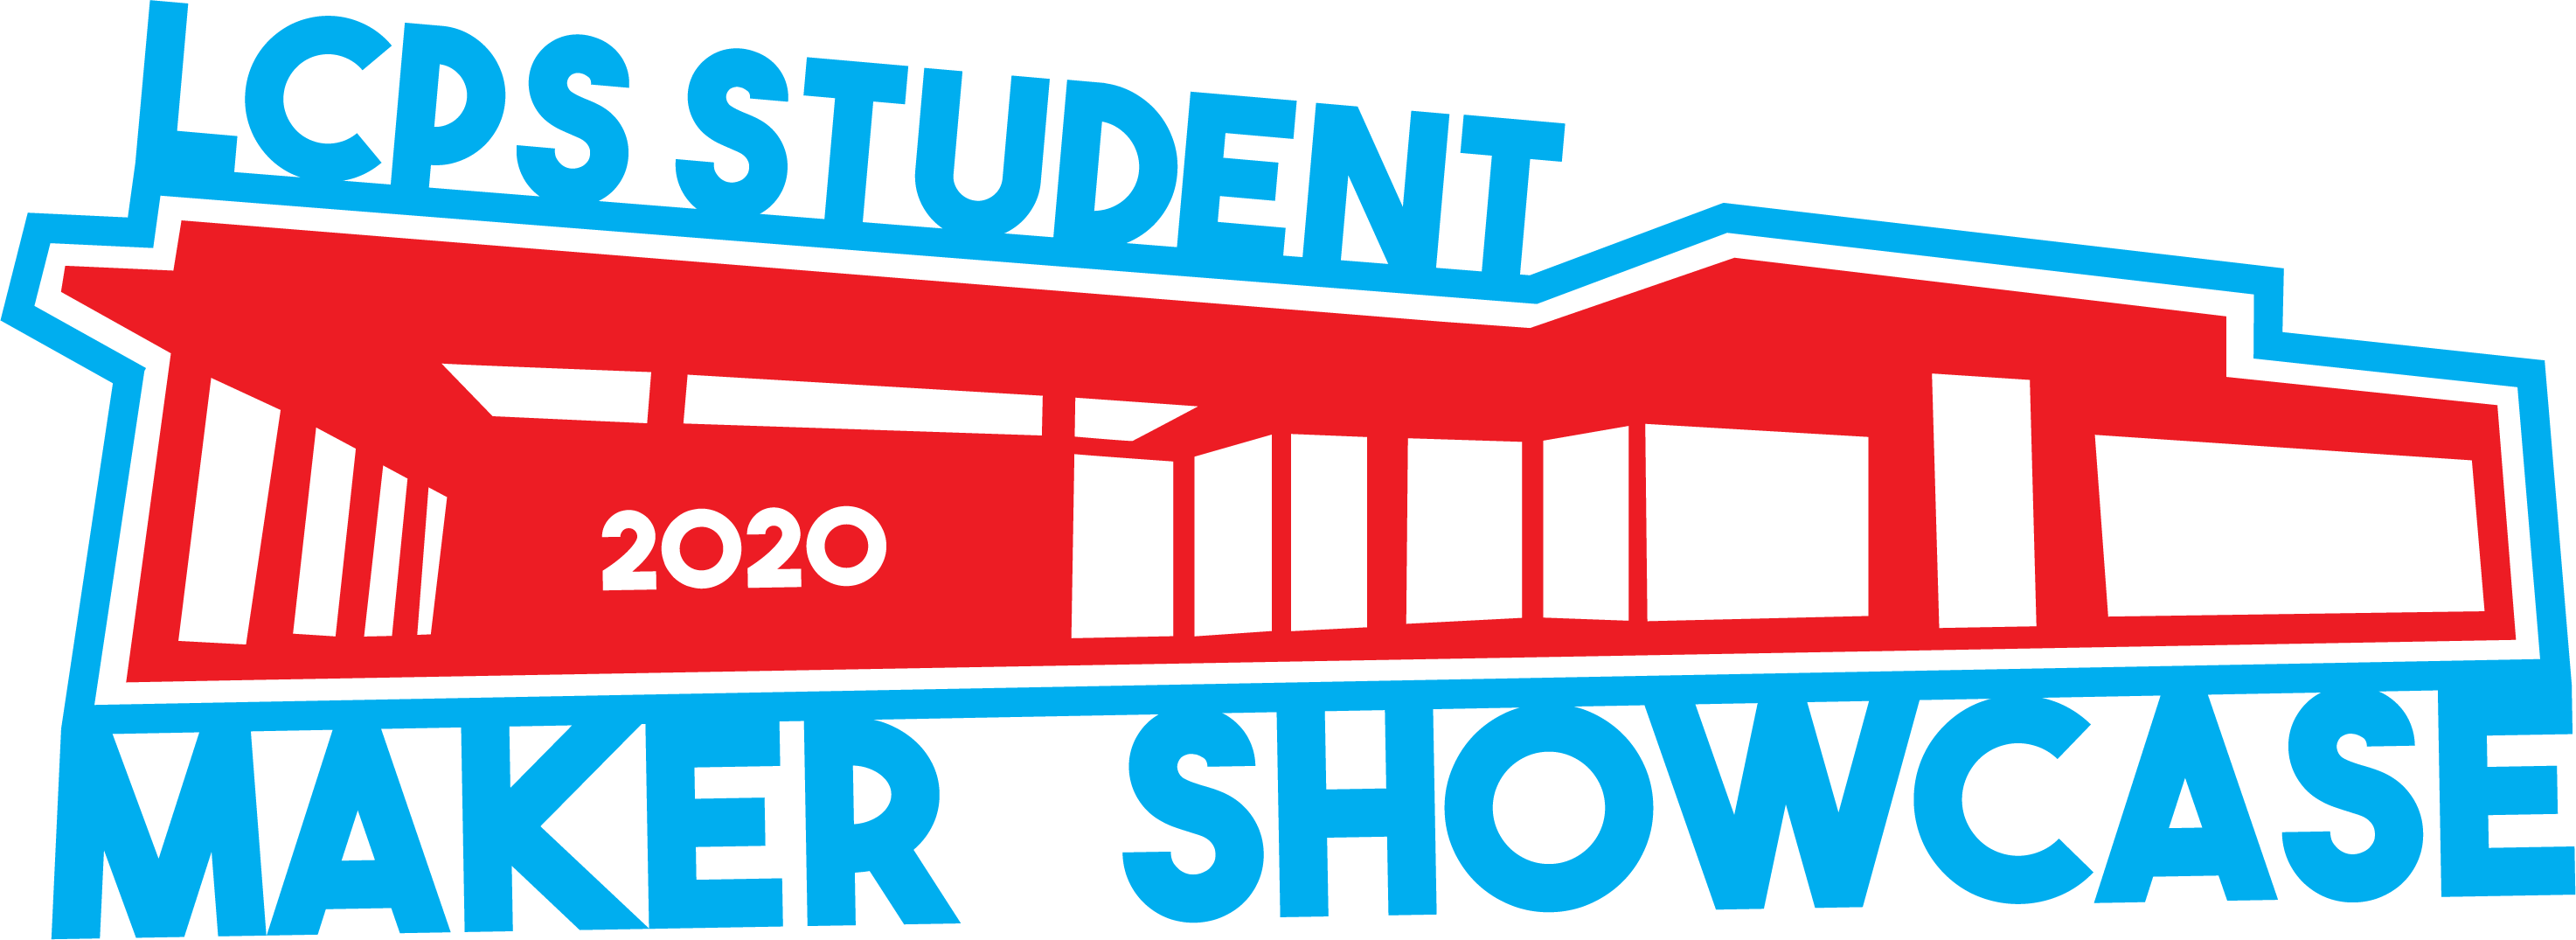 Logo of LCPS Student Maker Showcase